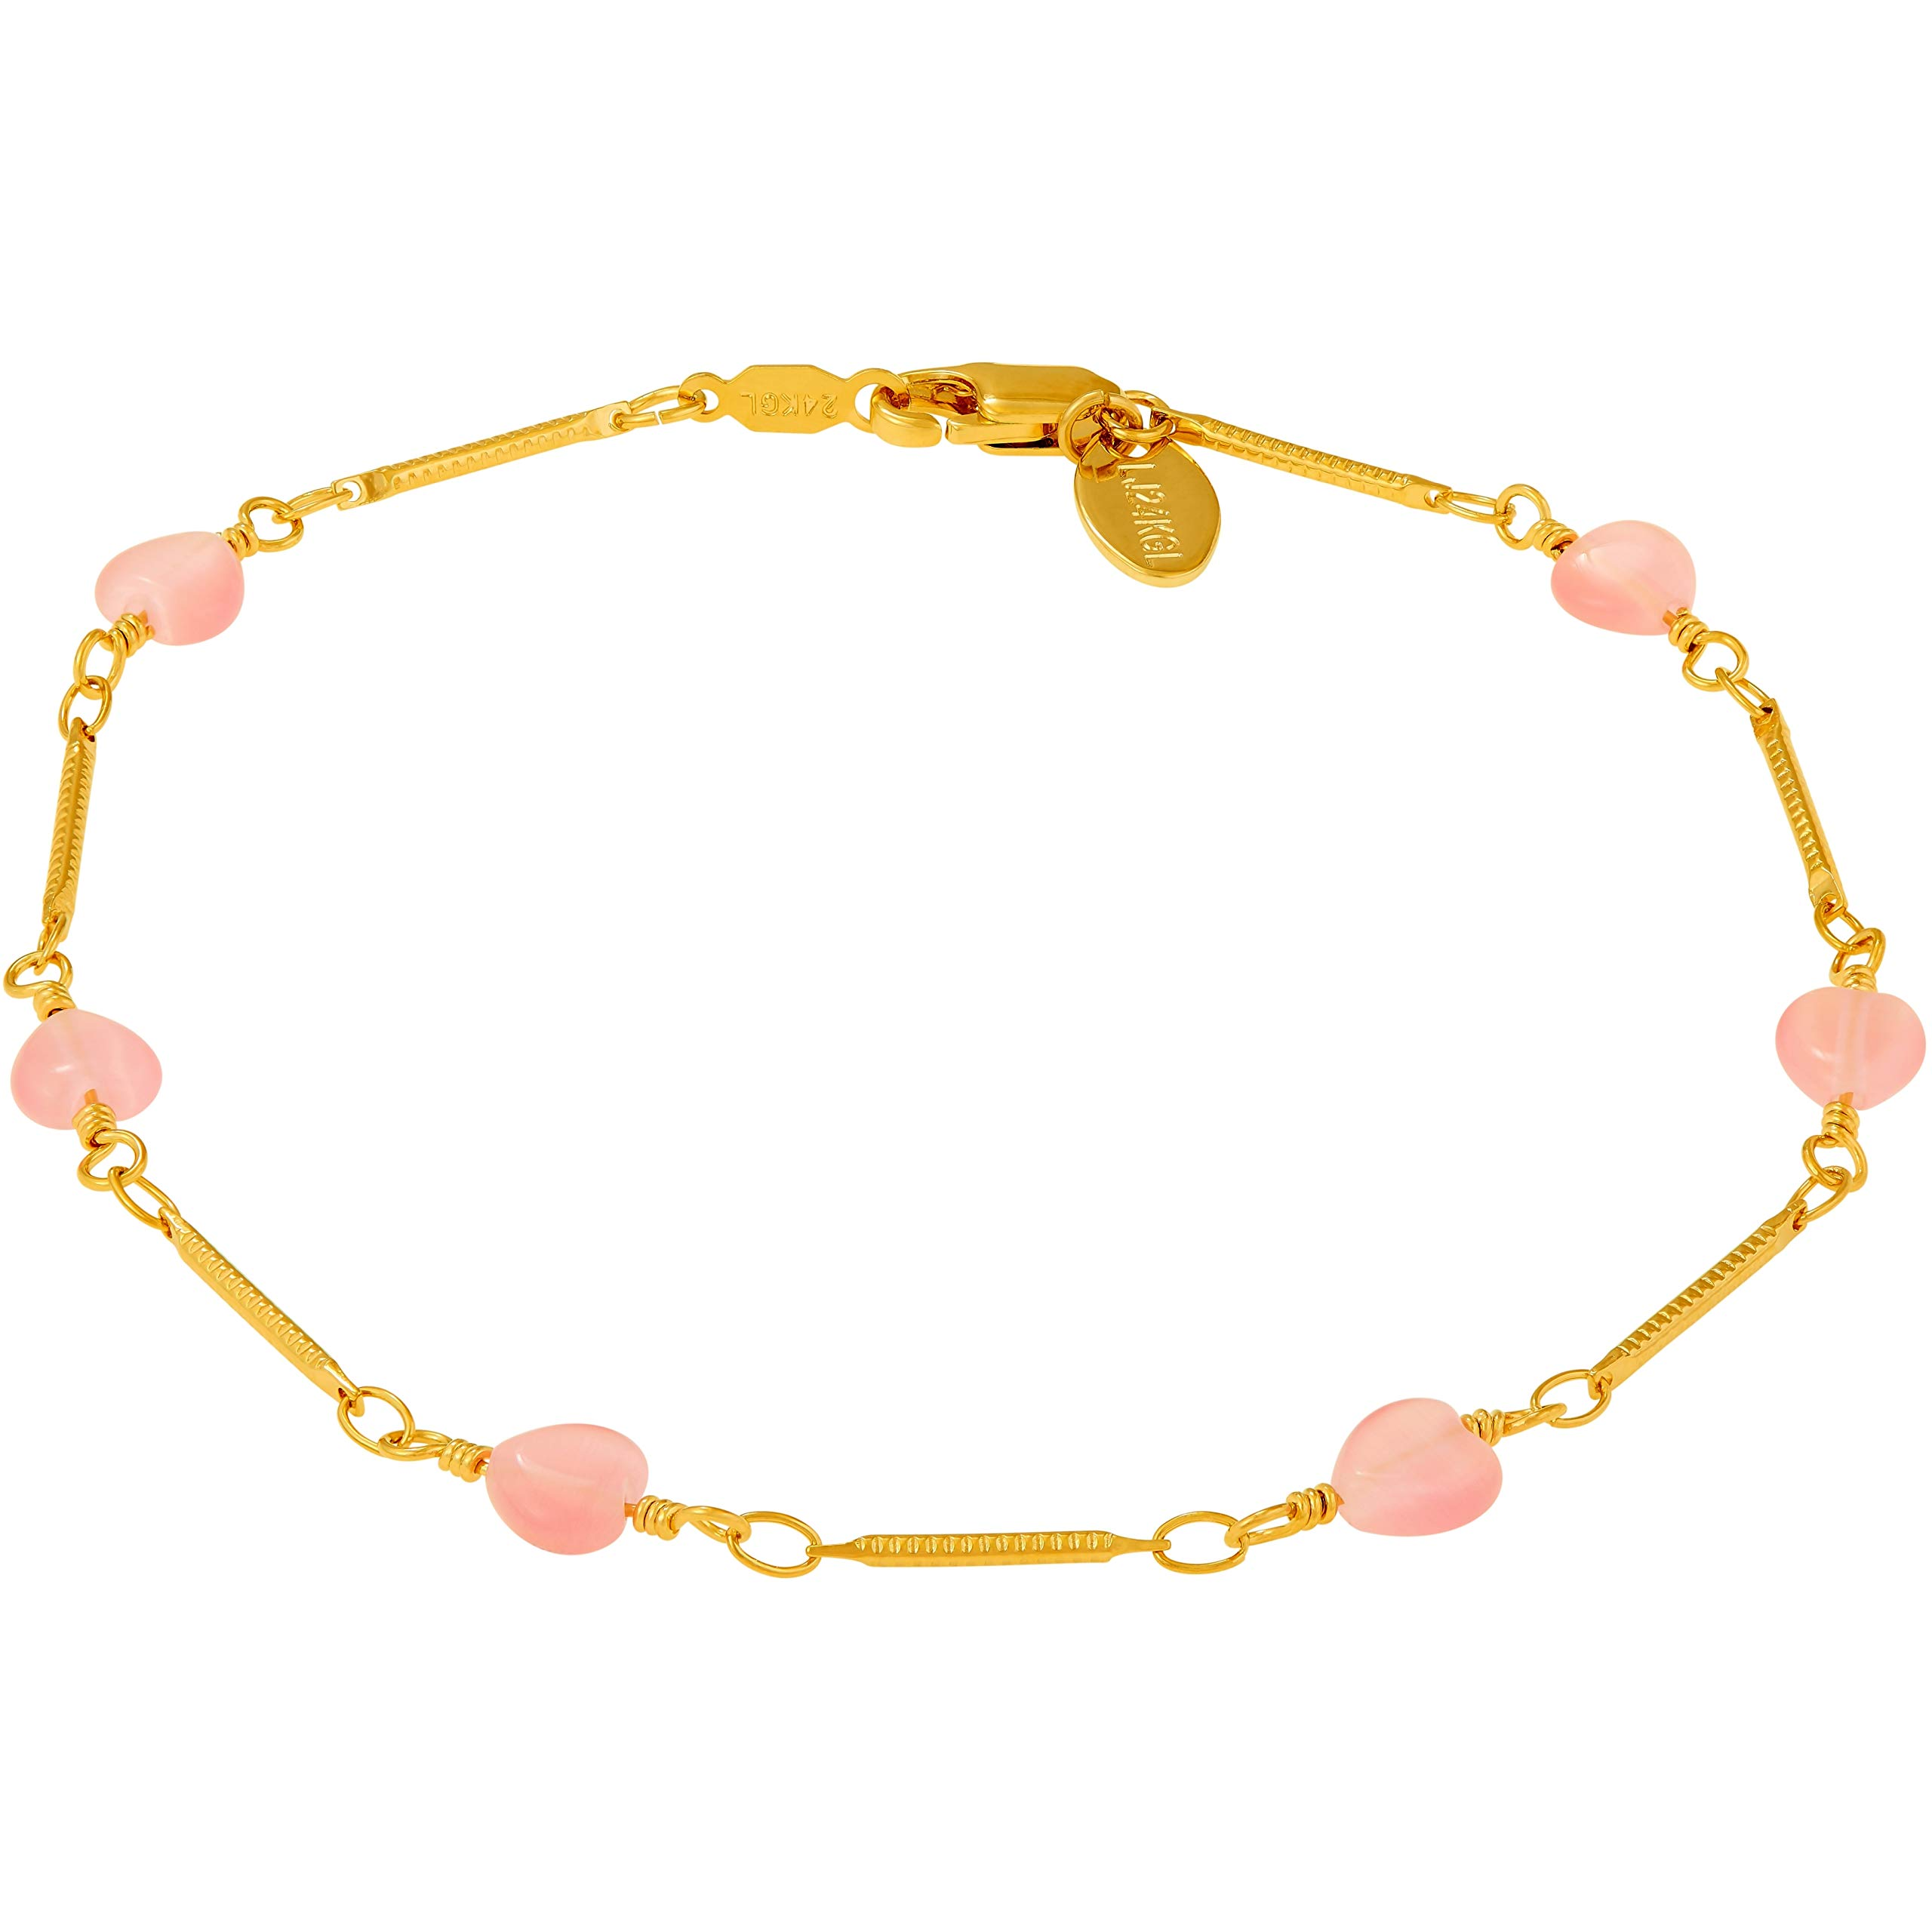 Lifetime Jewelry Ankle Bracelet for Women and Teen Girls [ 24k Gold Plated Pink Hearts Anklet ] Cute & Durable Foot Jewelry for Beach or Party with Free Lifetime Replacement Guarantee (11.00)